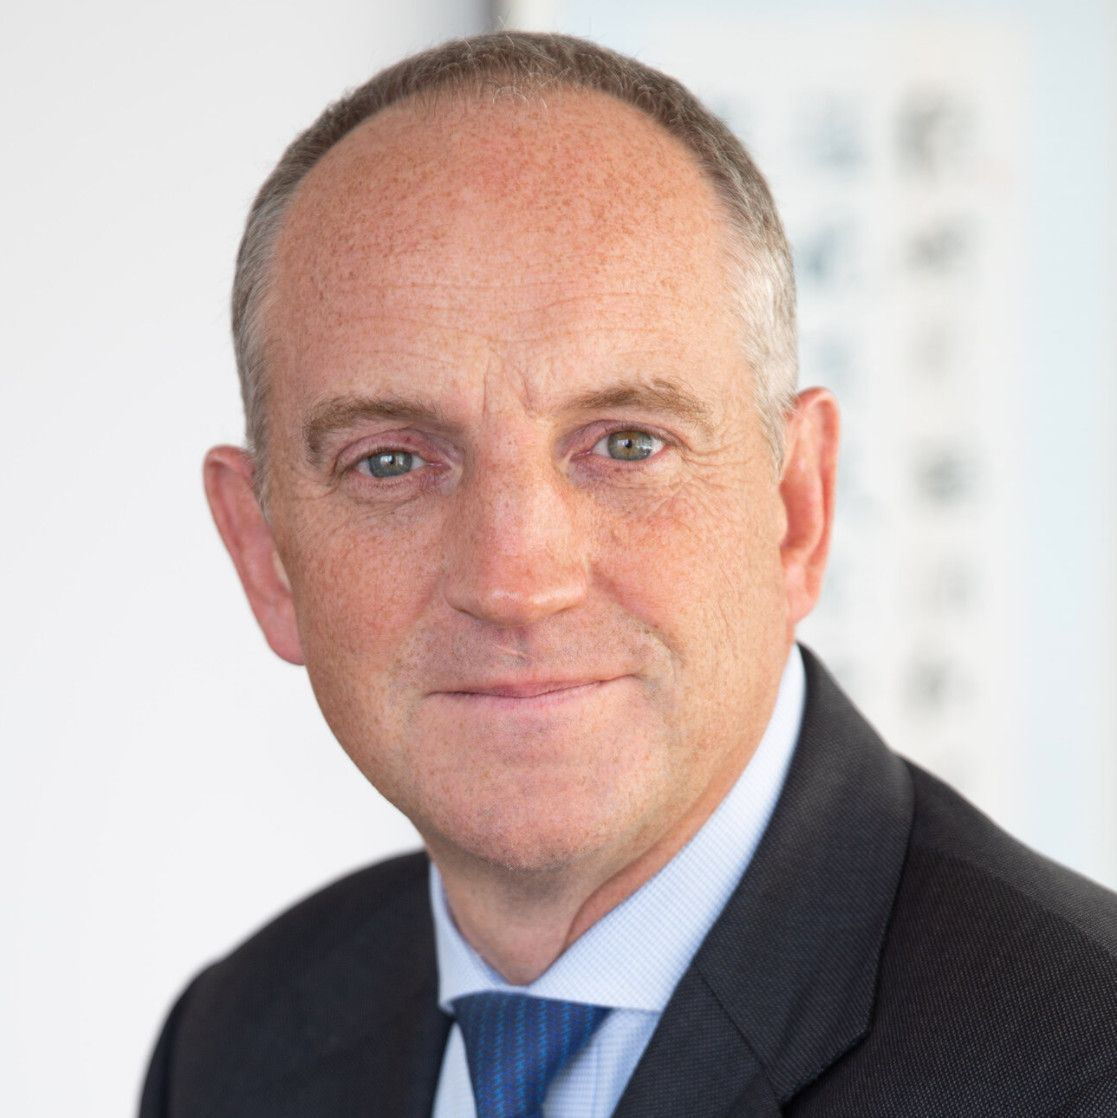 Thought Machine appoints Andy Maguire Board Chair, Thought Machine